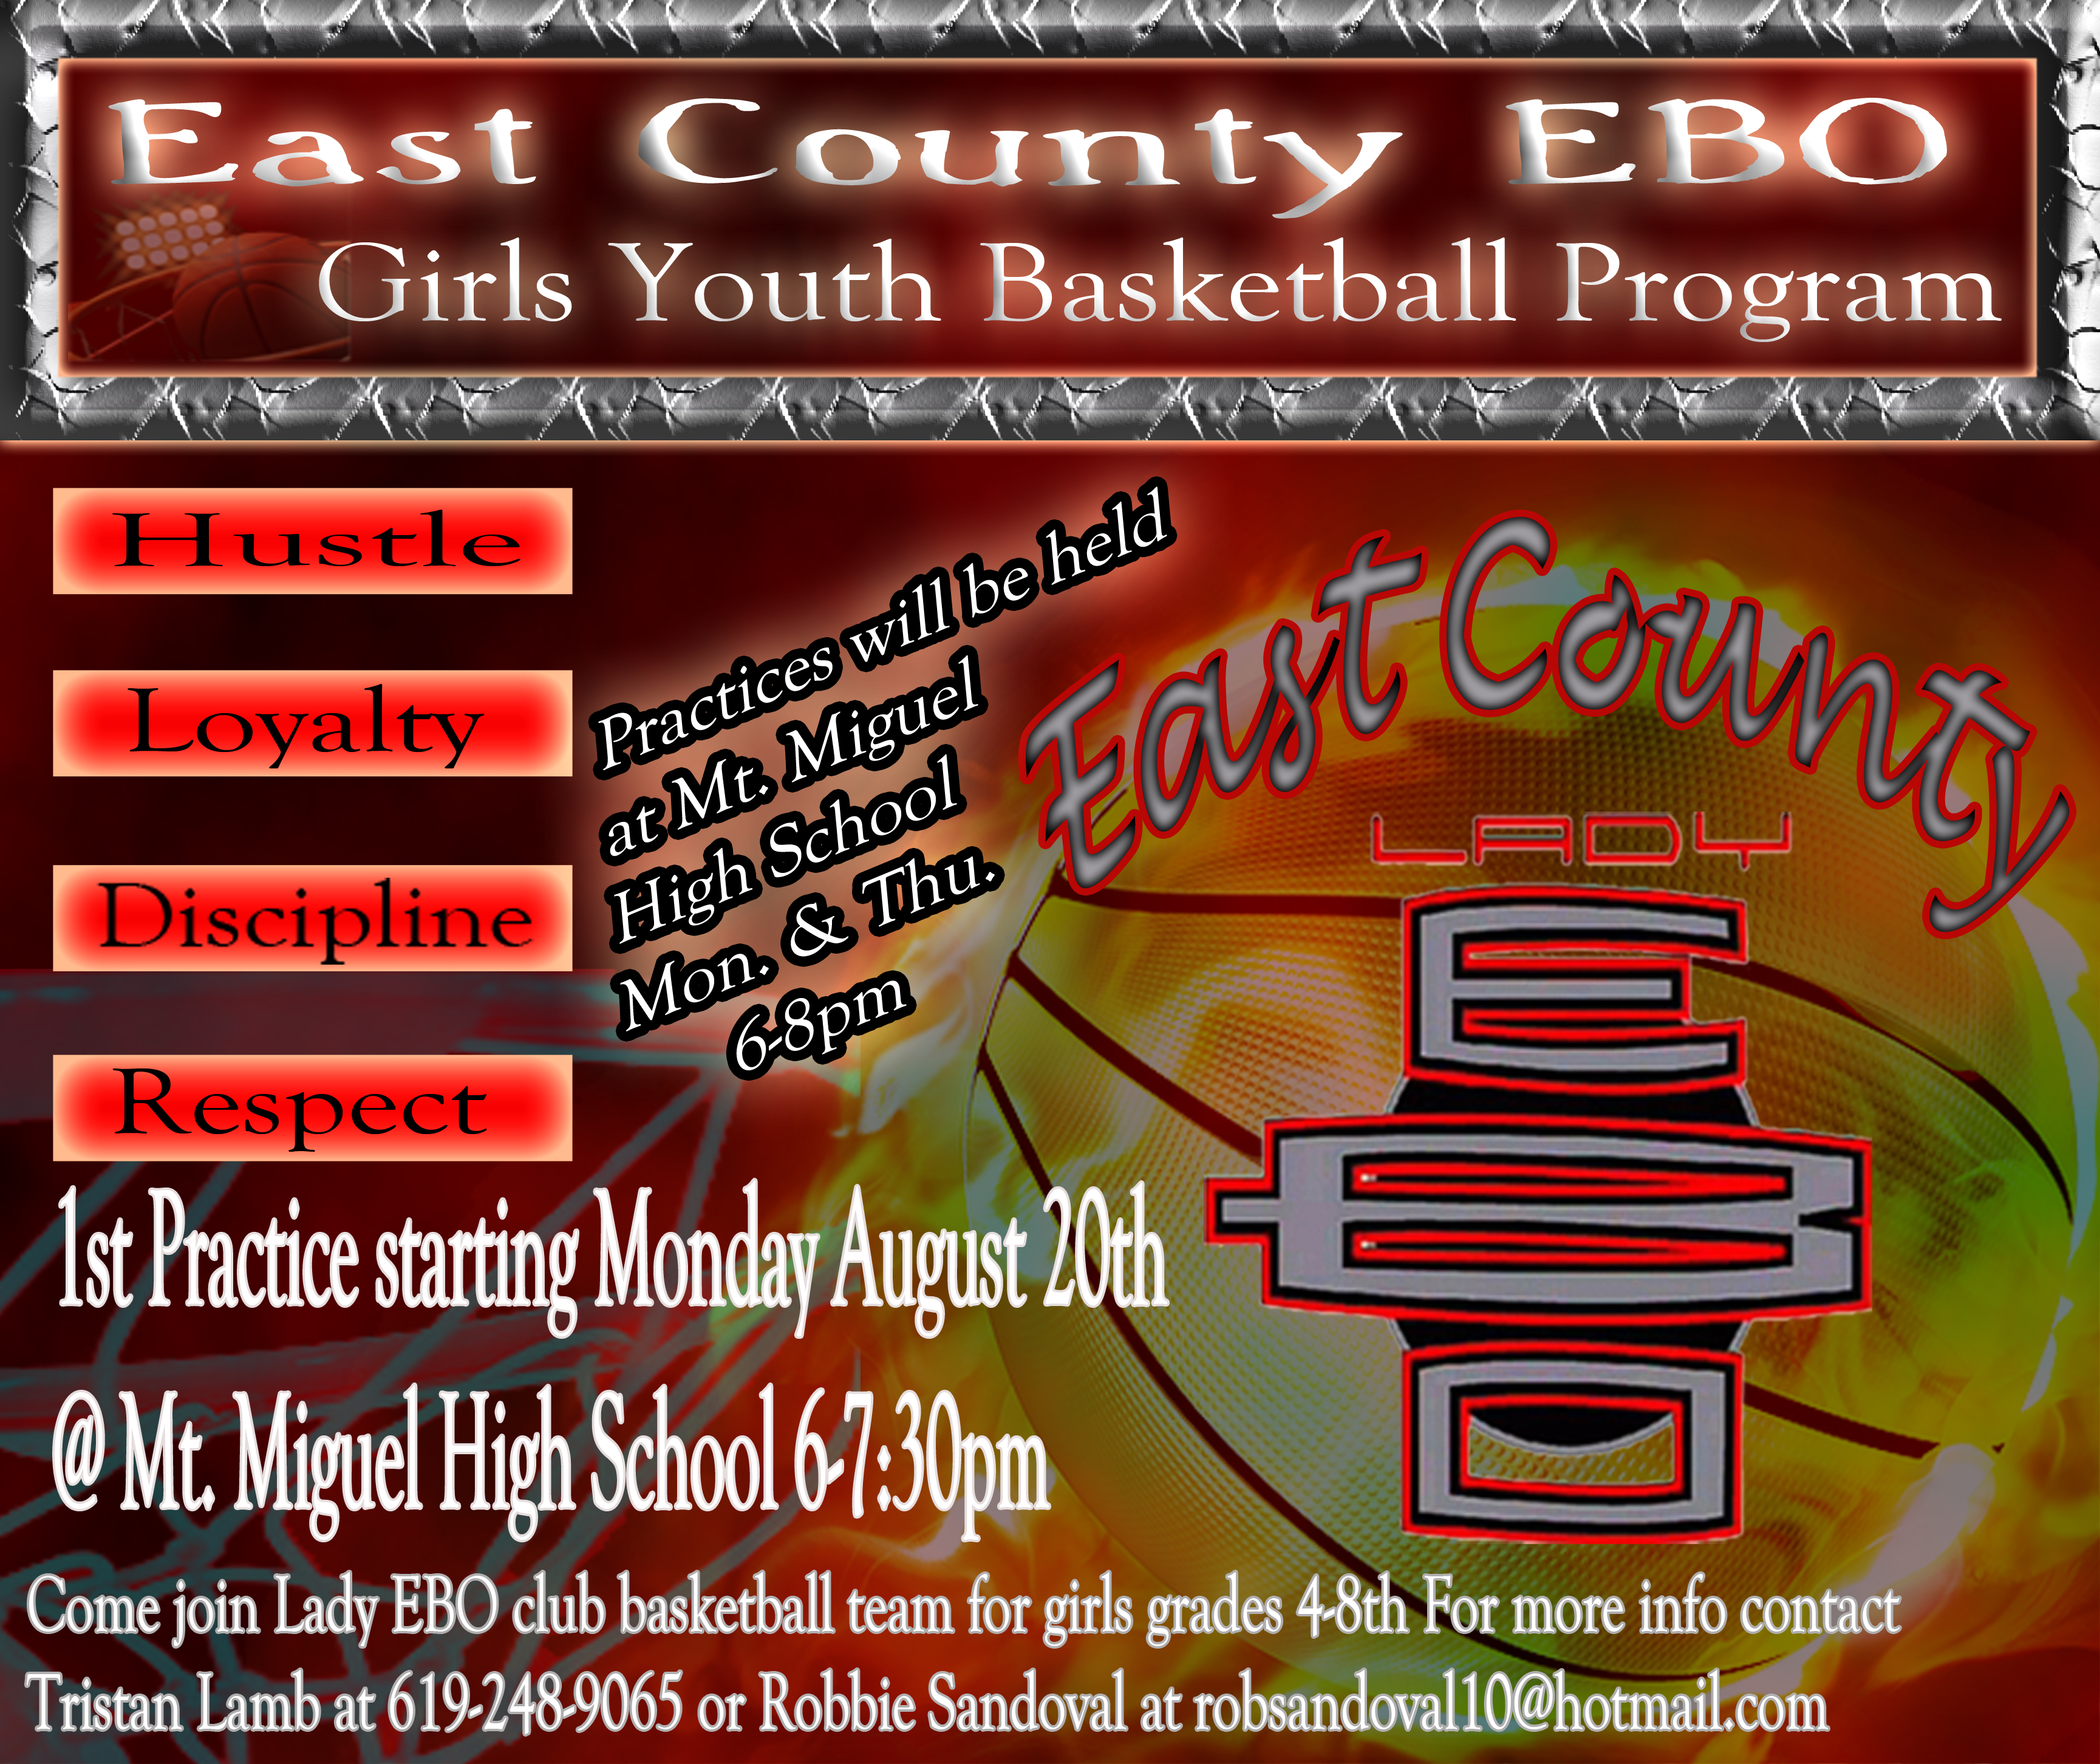 EAST COUNTY SPORTS - Real Sports... Real Time